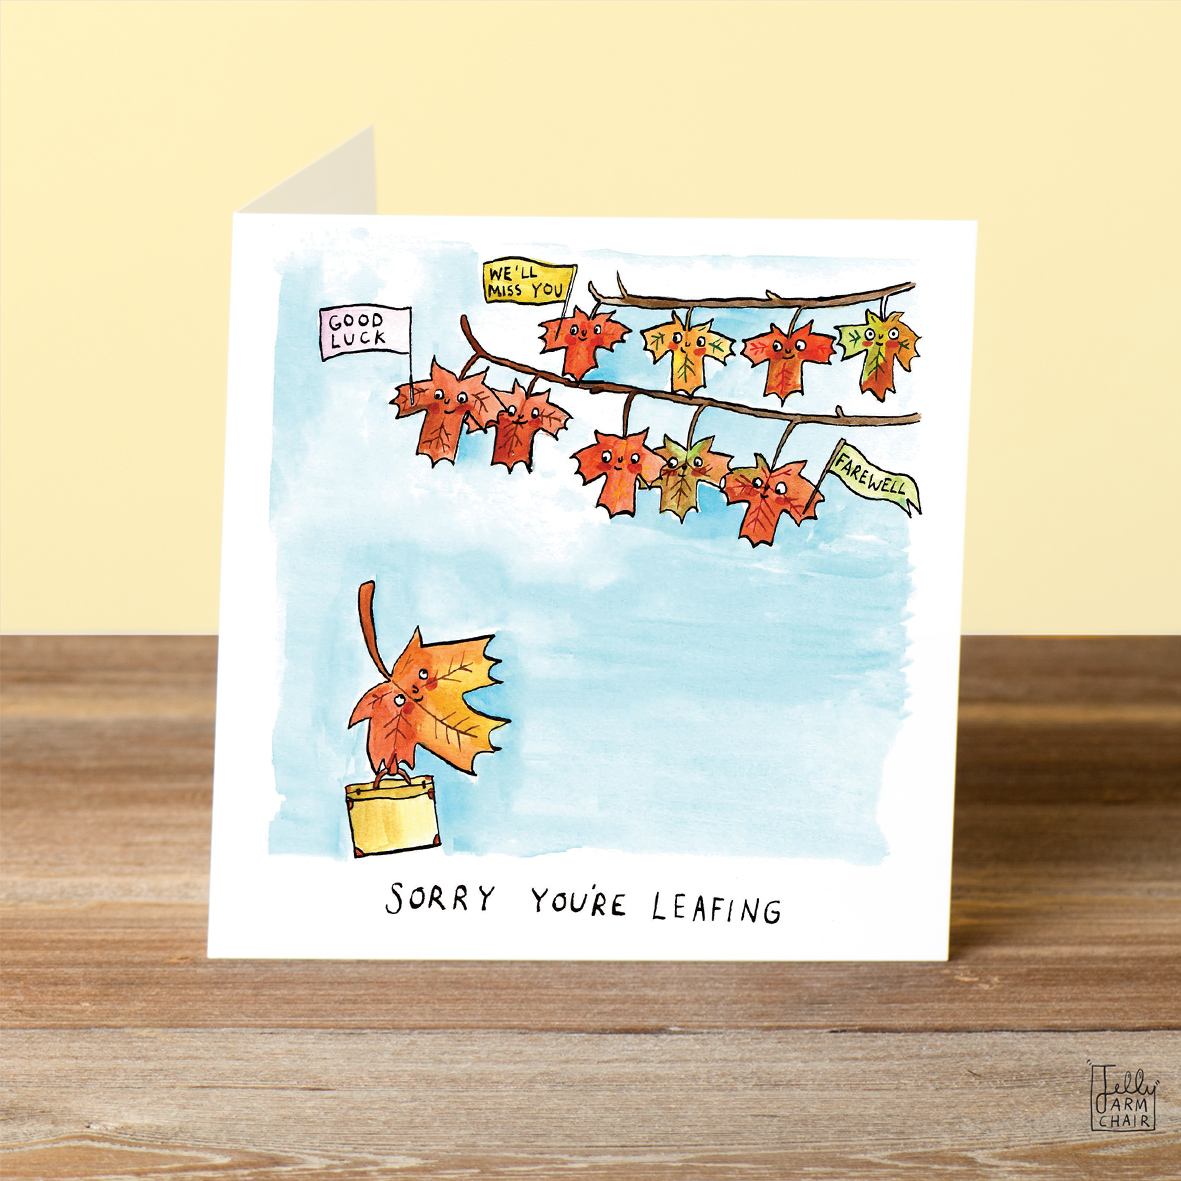 Sorry-Youre-Leafing_-Sorry-you-are-leaving-greetings-card-for-new-jobs_FW04_OT